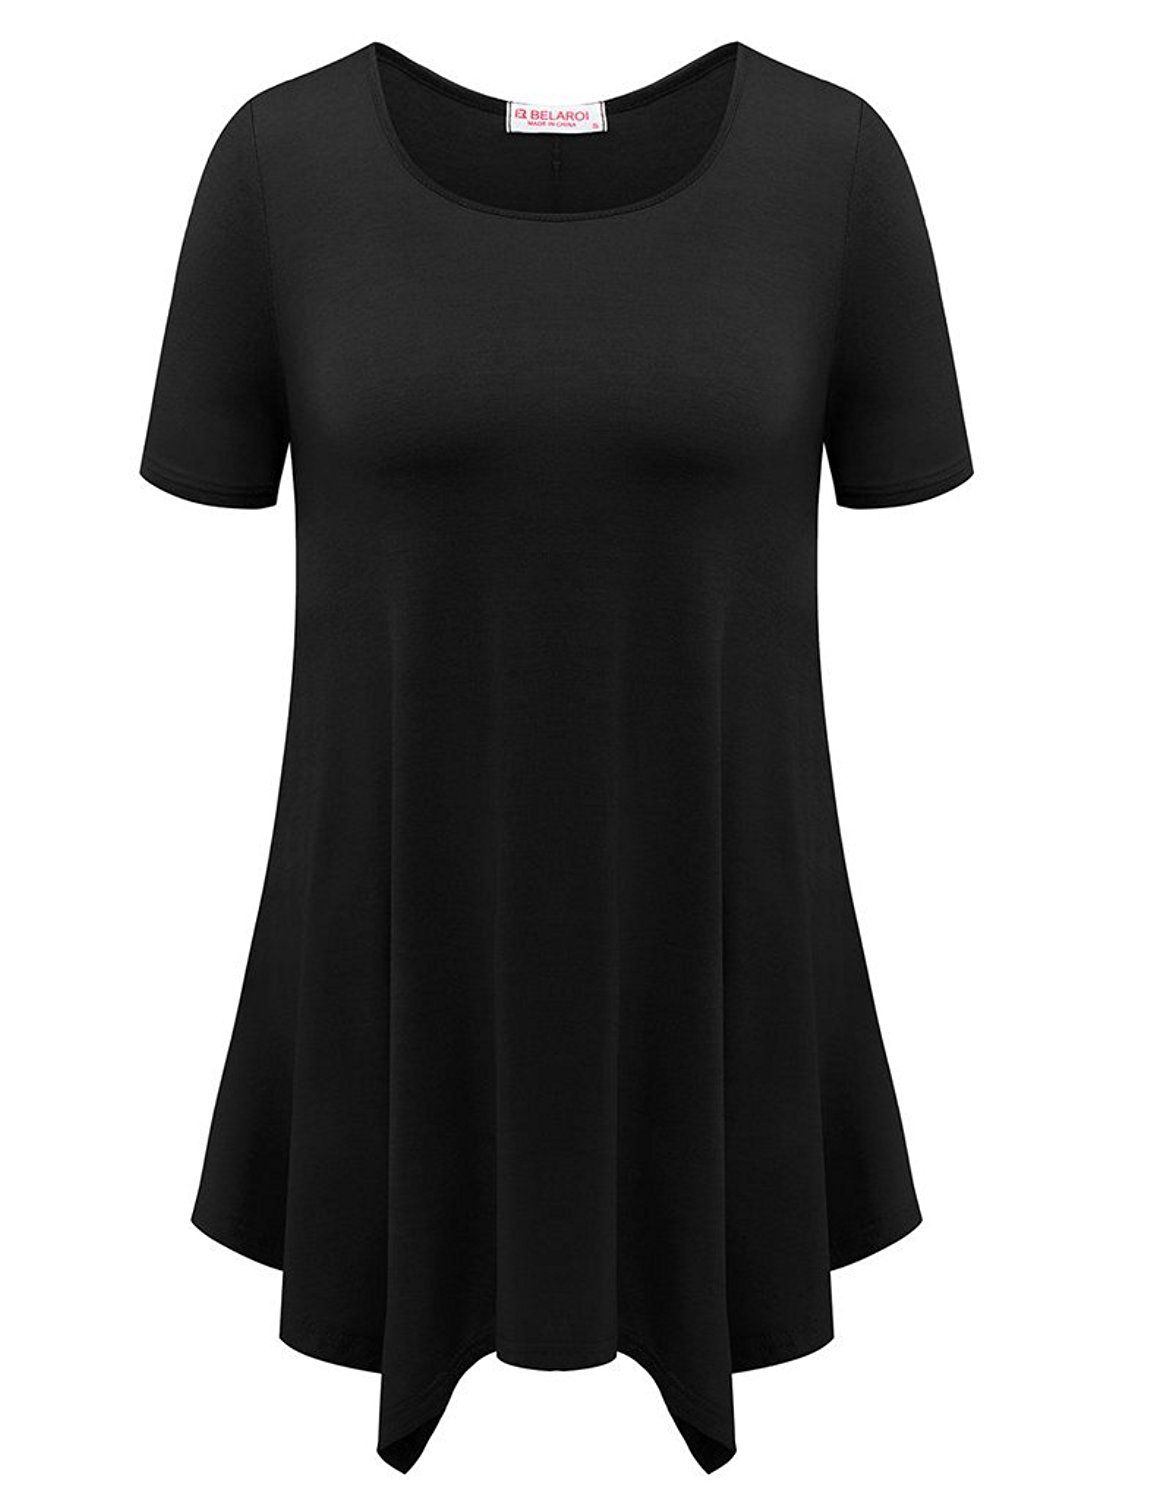 Belaroi womens basic solid loose fit short sleeve tunic t shirt at